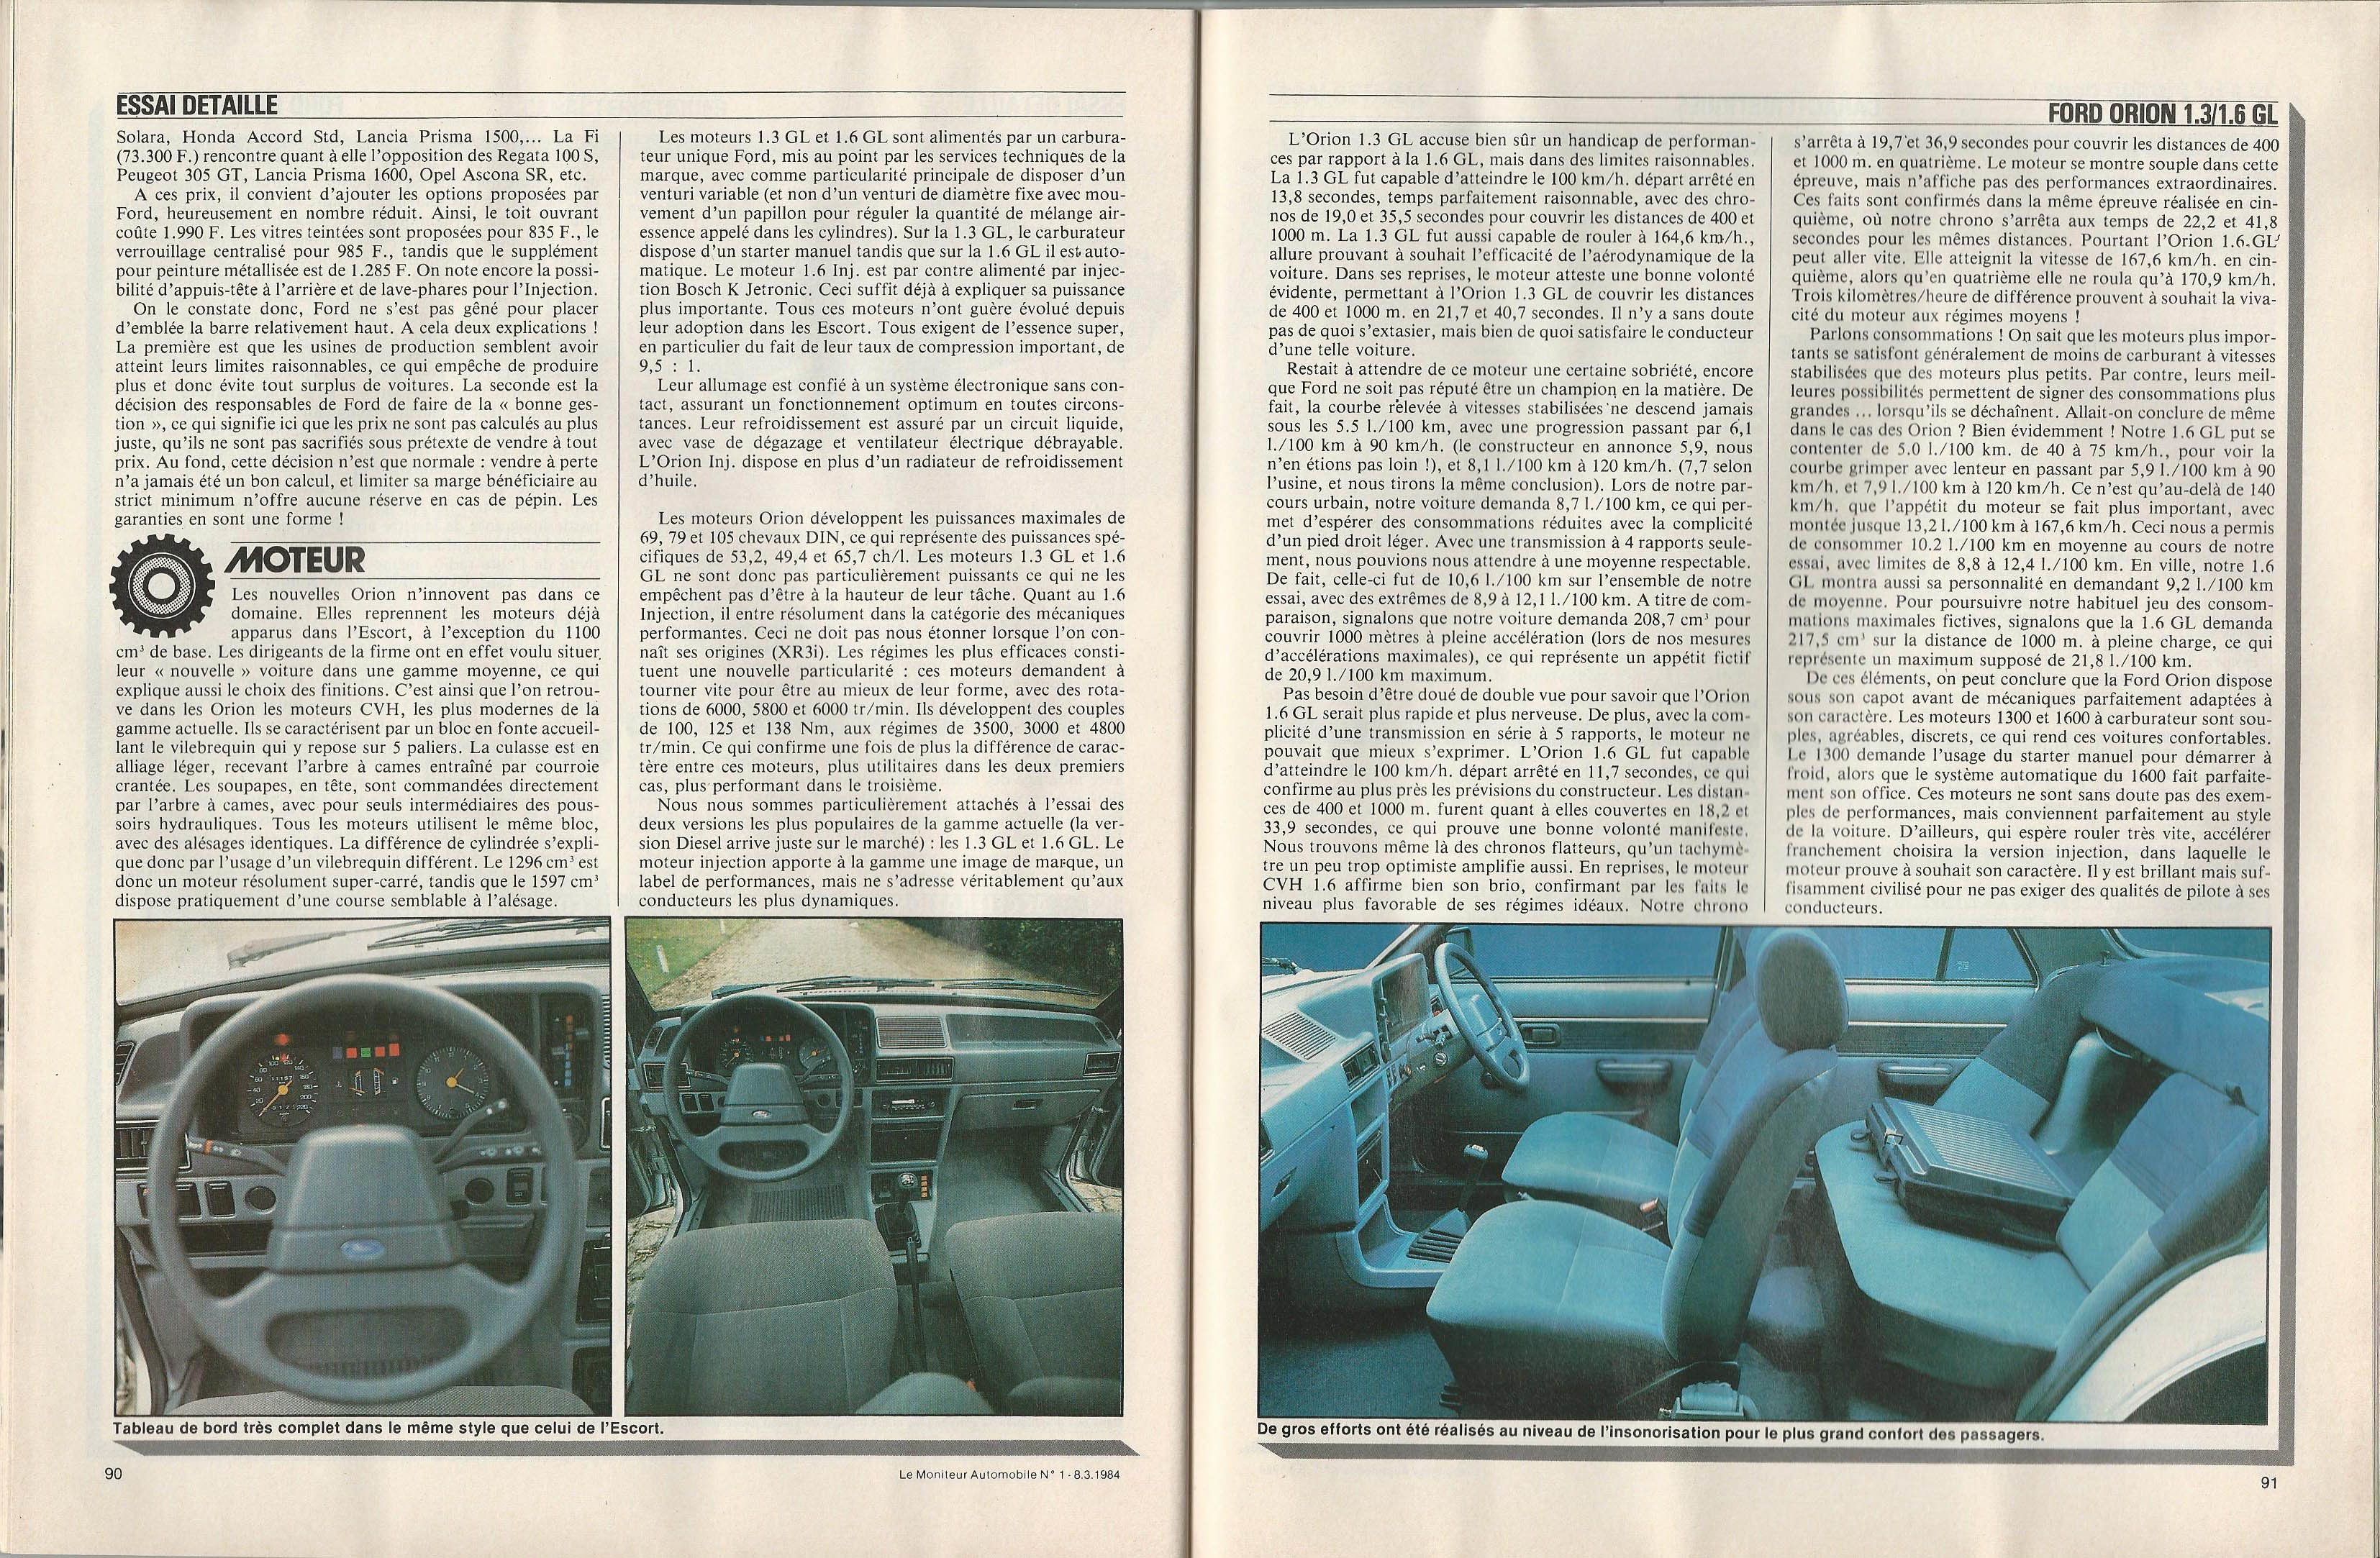 Moniteur Automobile 01 - 08 Mars 1984 (37)